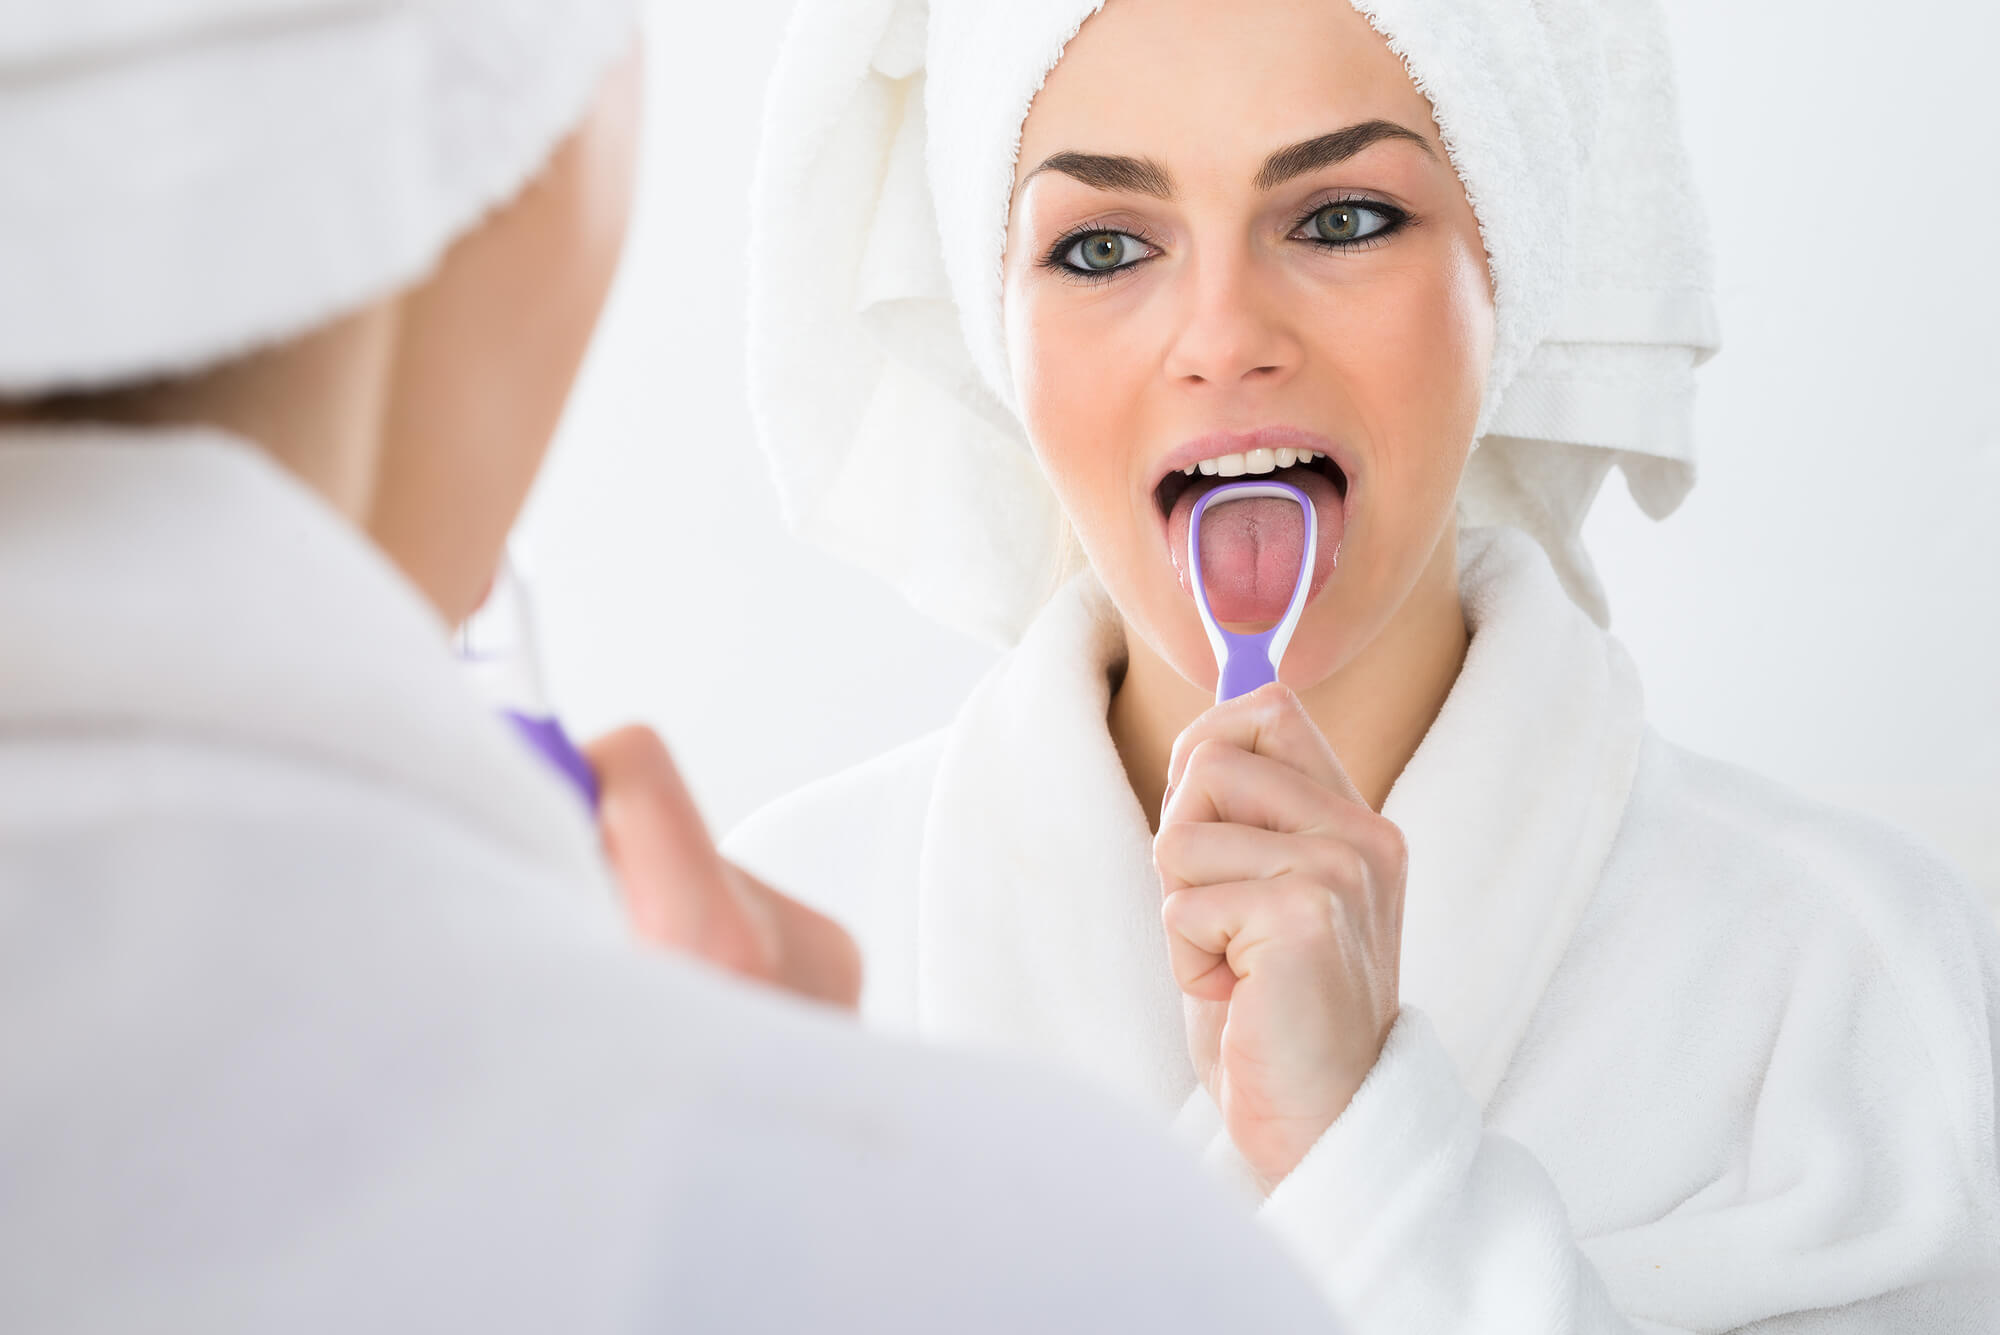 Preventative and oral hygiene solutions